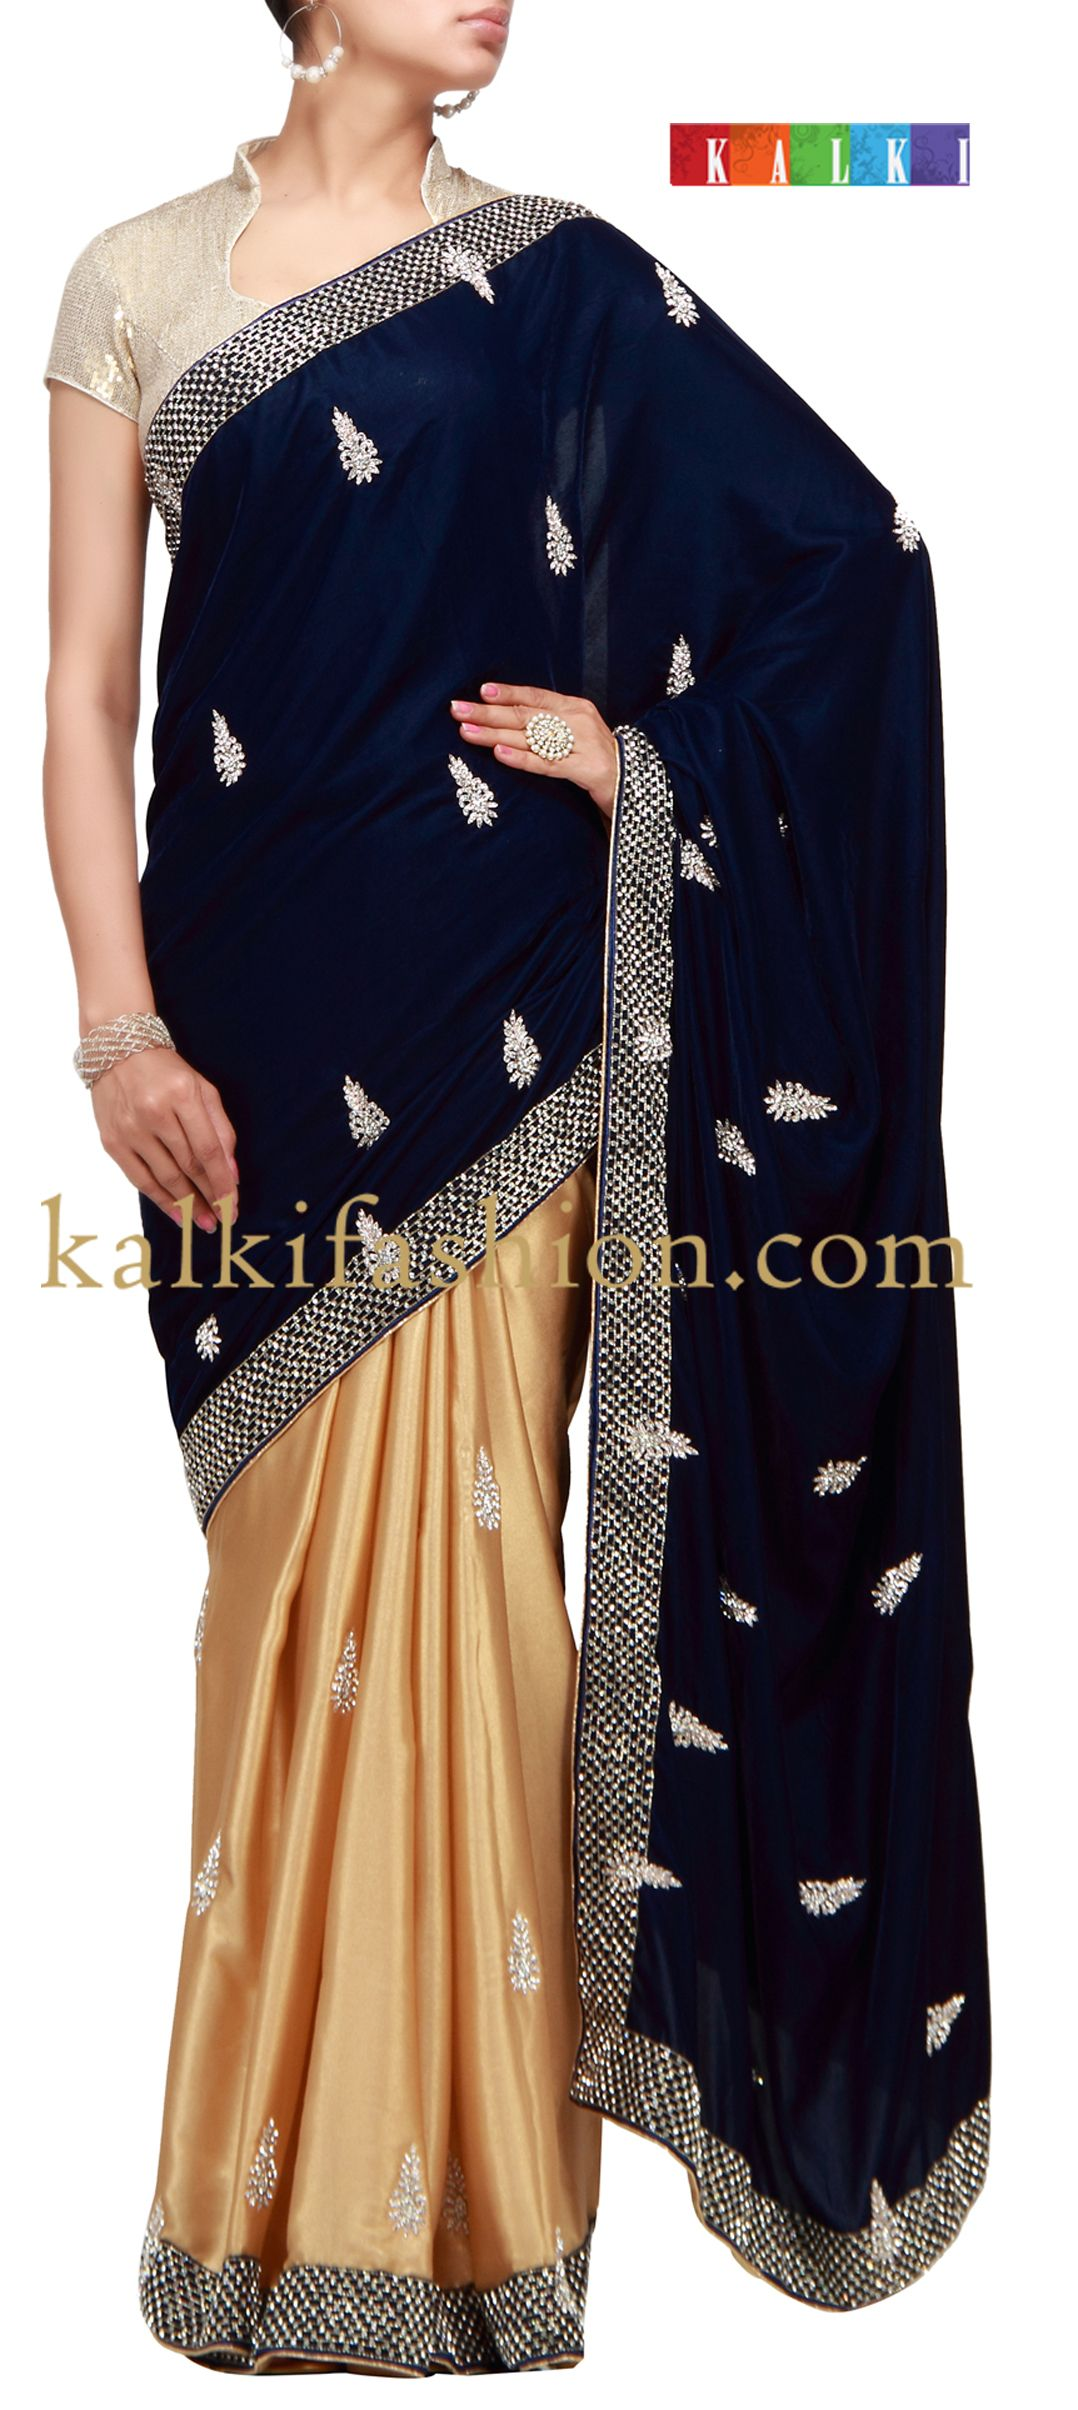 Casual dresses to wear to a wedding  Buy it now kalkifashionblueandgoldfoilhalfhalf